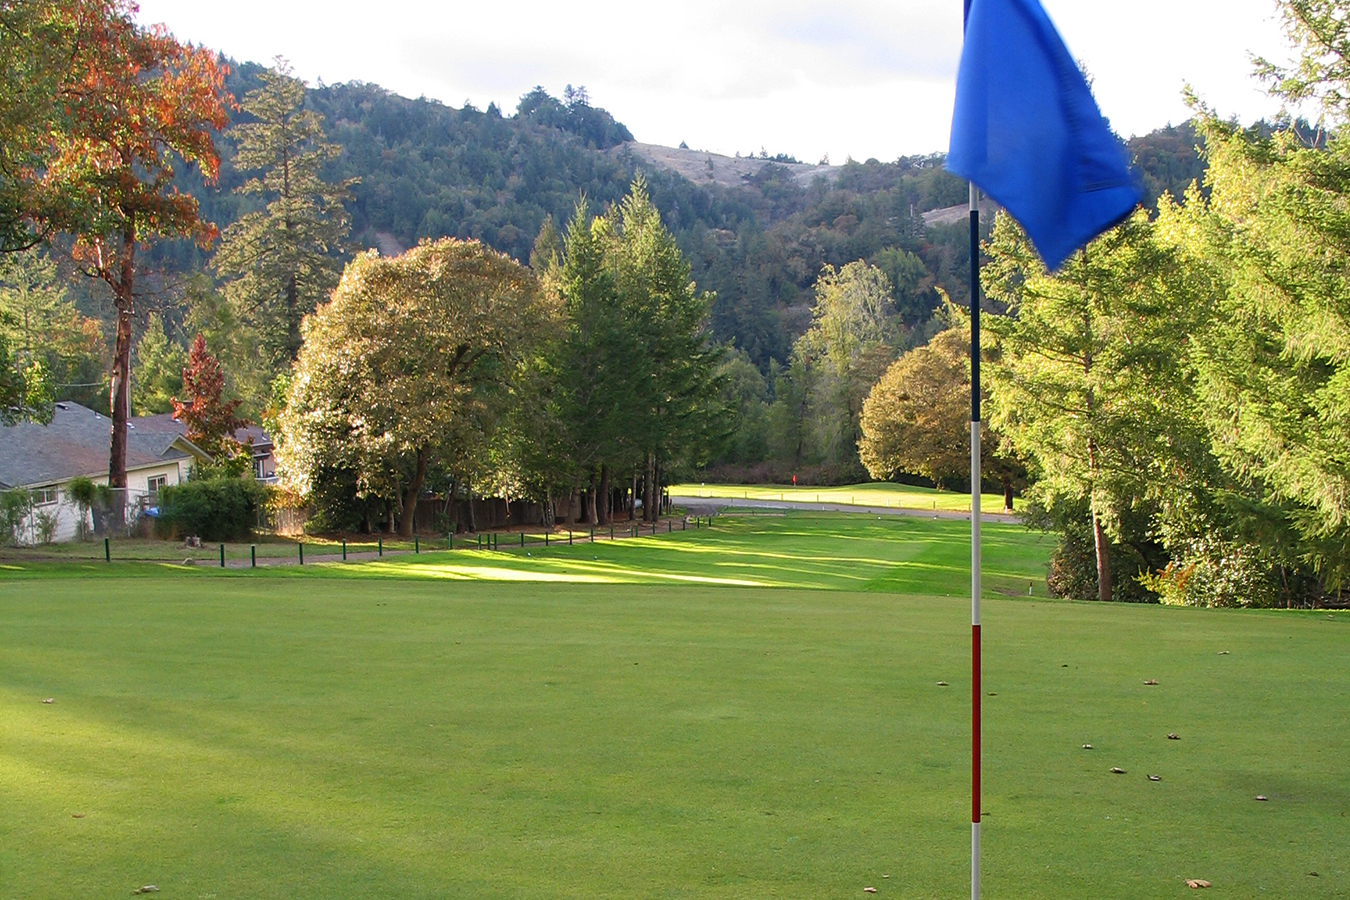 banner image is of Photo is of the Benbow KOA Golf Course